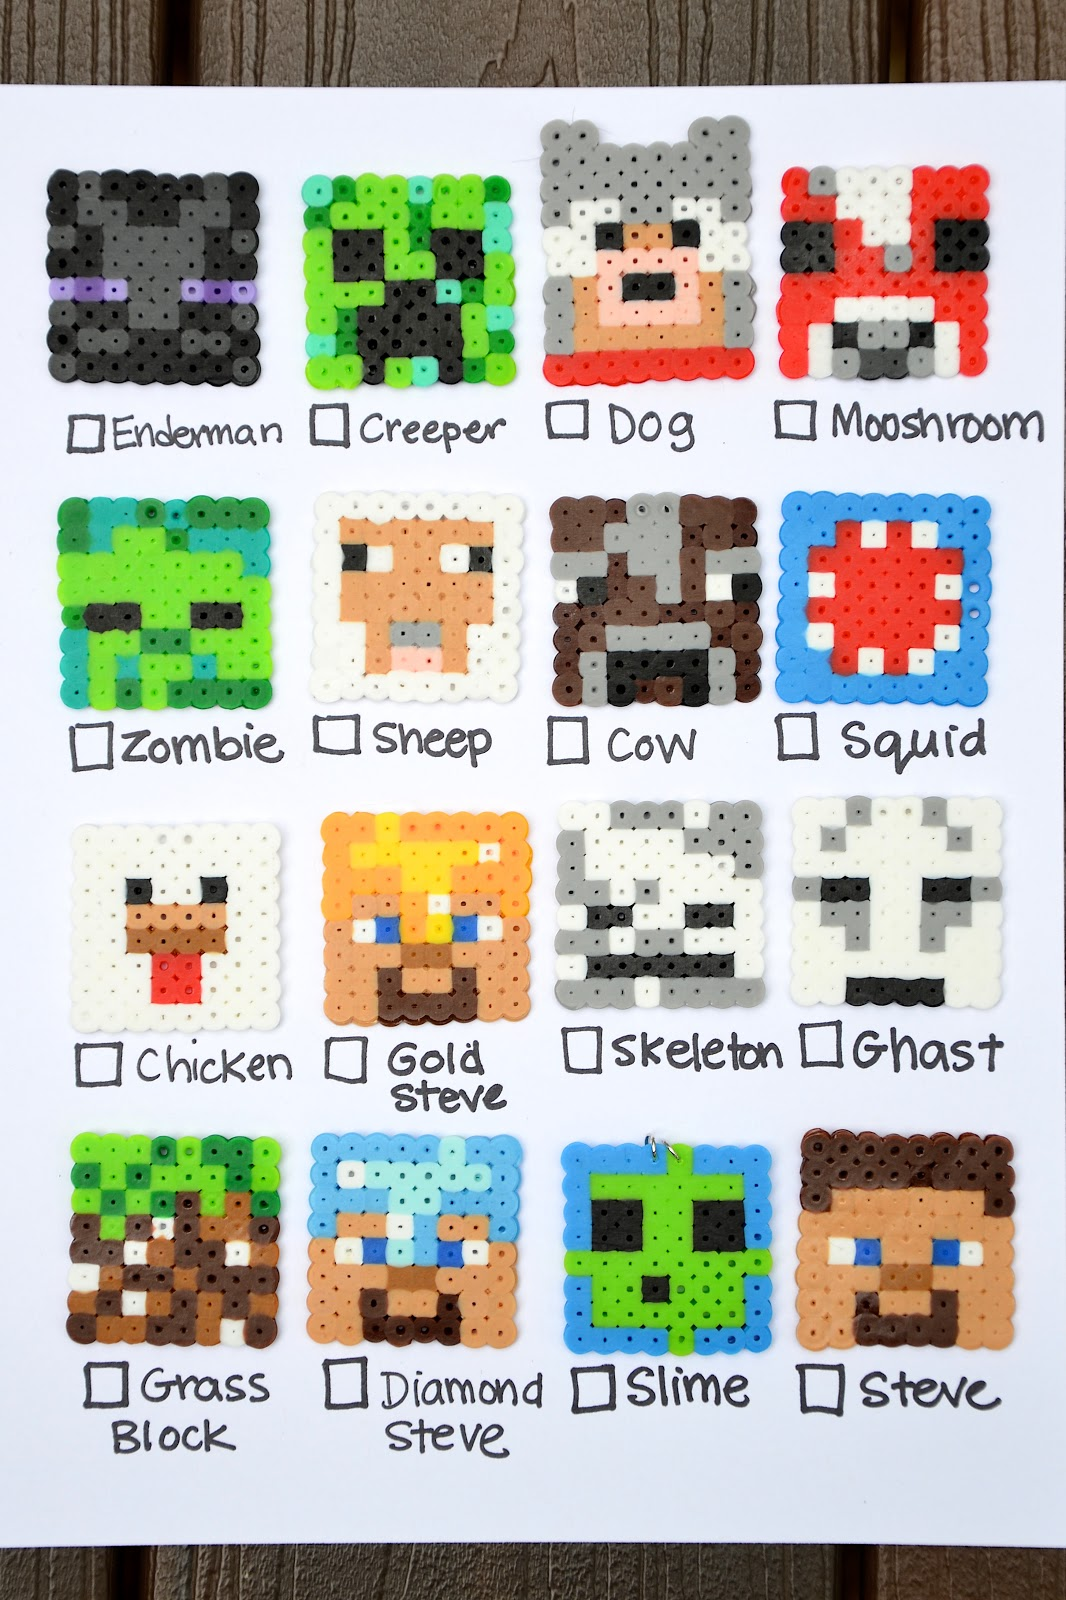 Ikat Bag Minecraft Party Coloring Bookmarks Crafting Golden Apples And Find The Heads